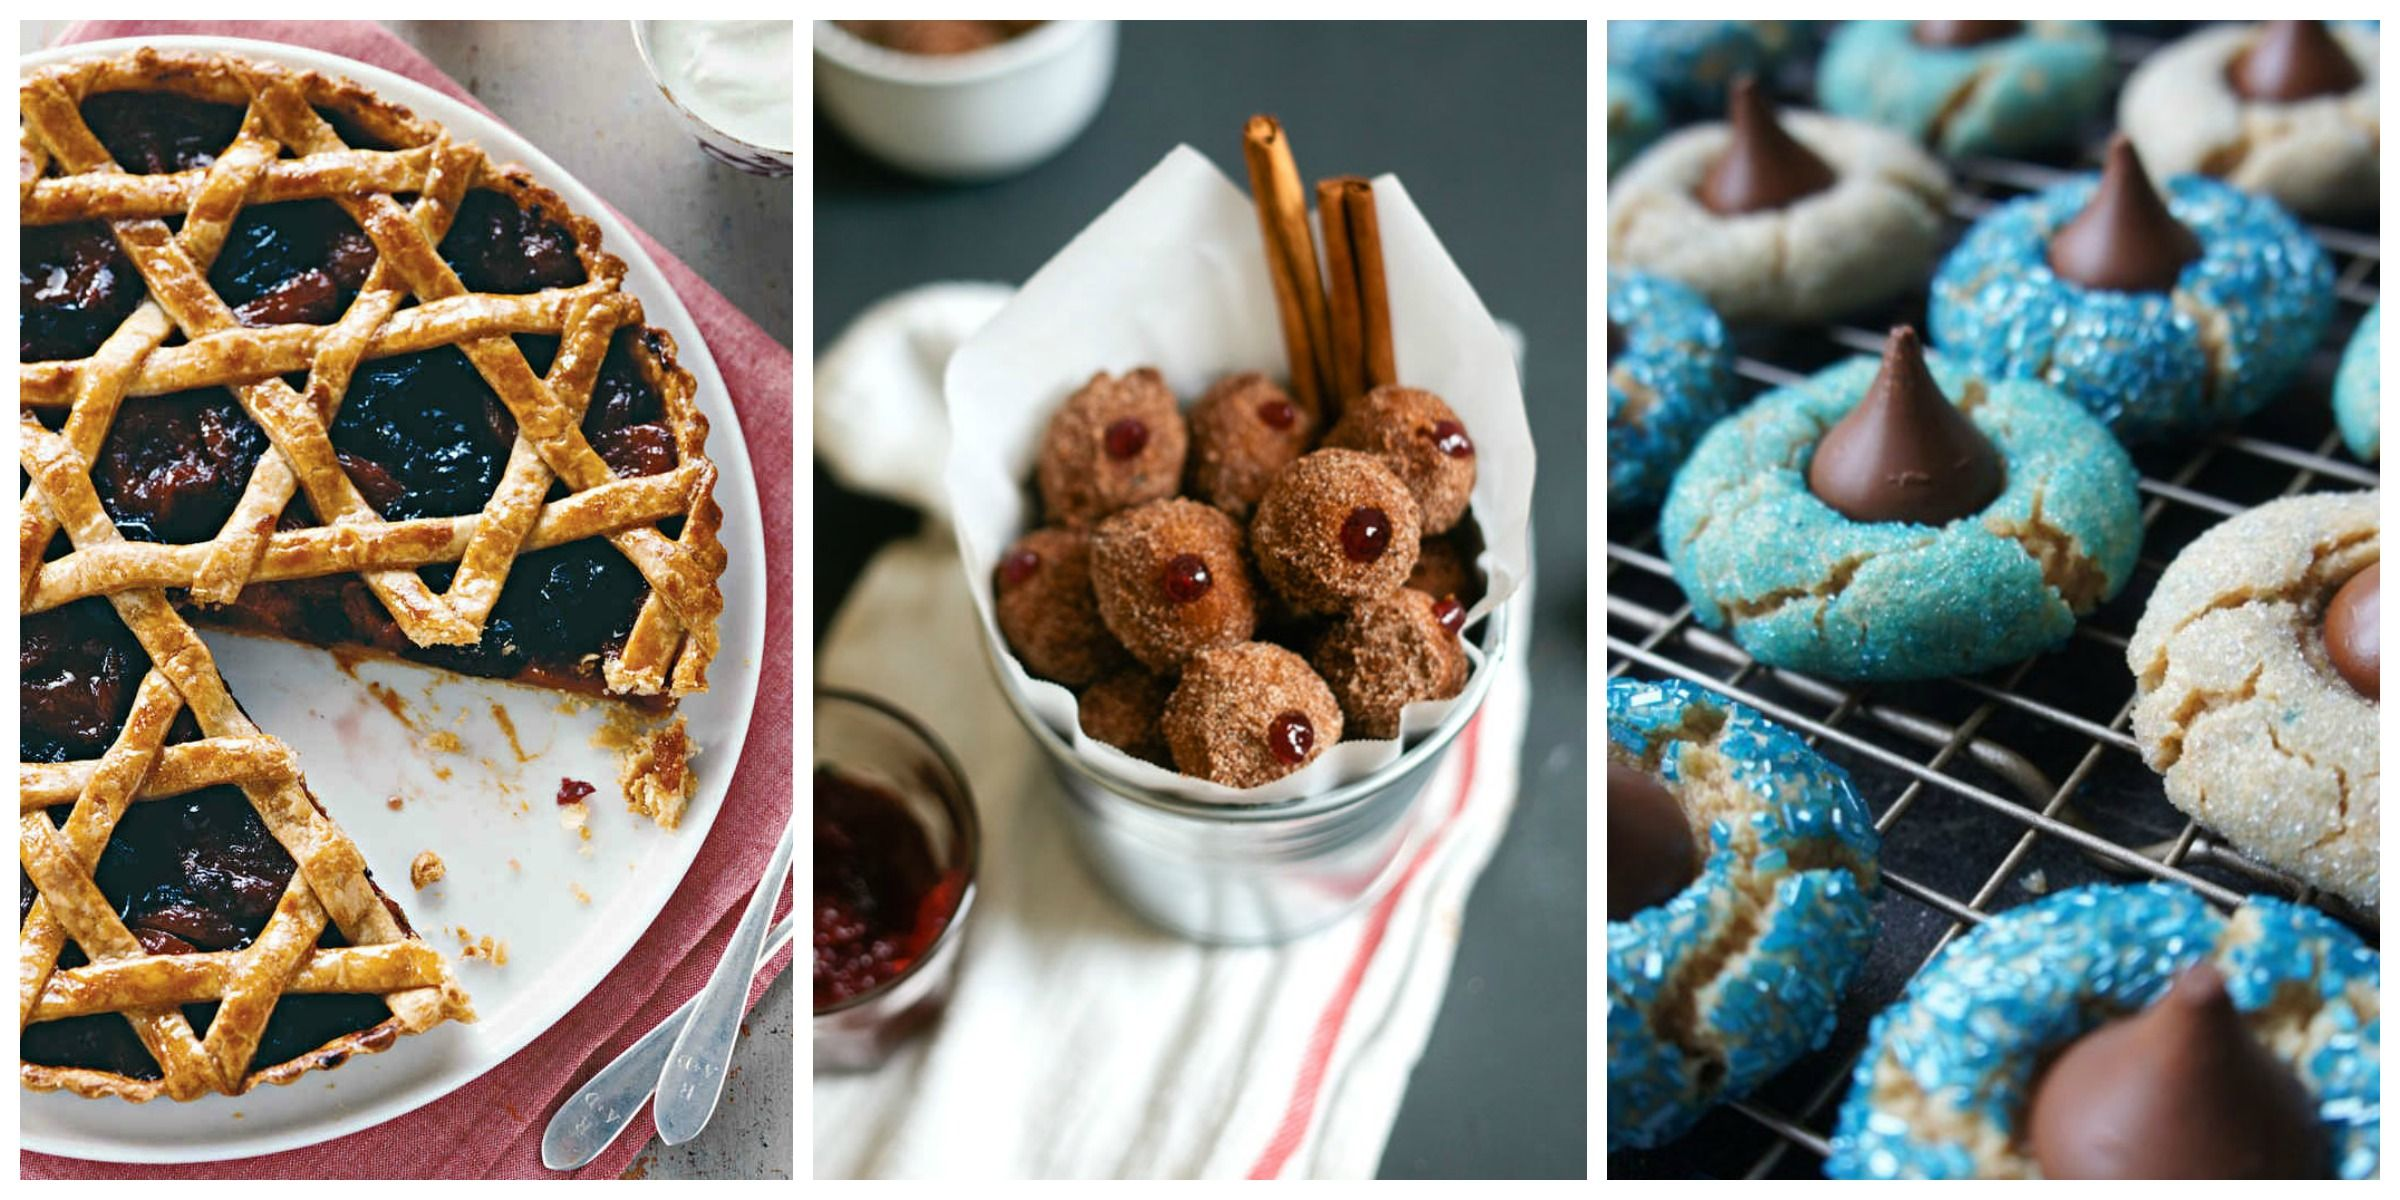 8 Delectable Dessert Recipes That Are—Wait for It—Paleo 8 Delectable Dessert Recipes That Are—Wait for It—Paleo new foto